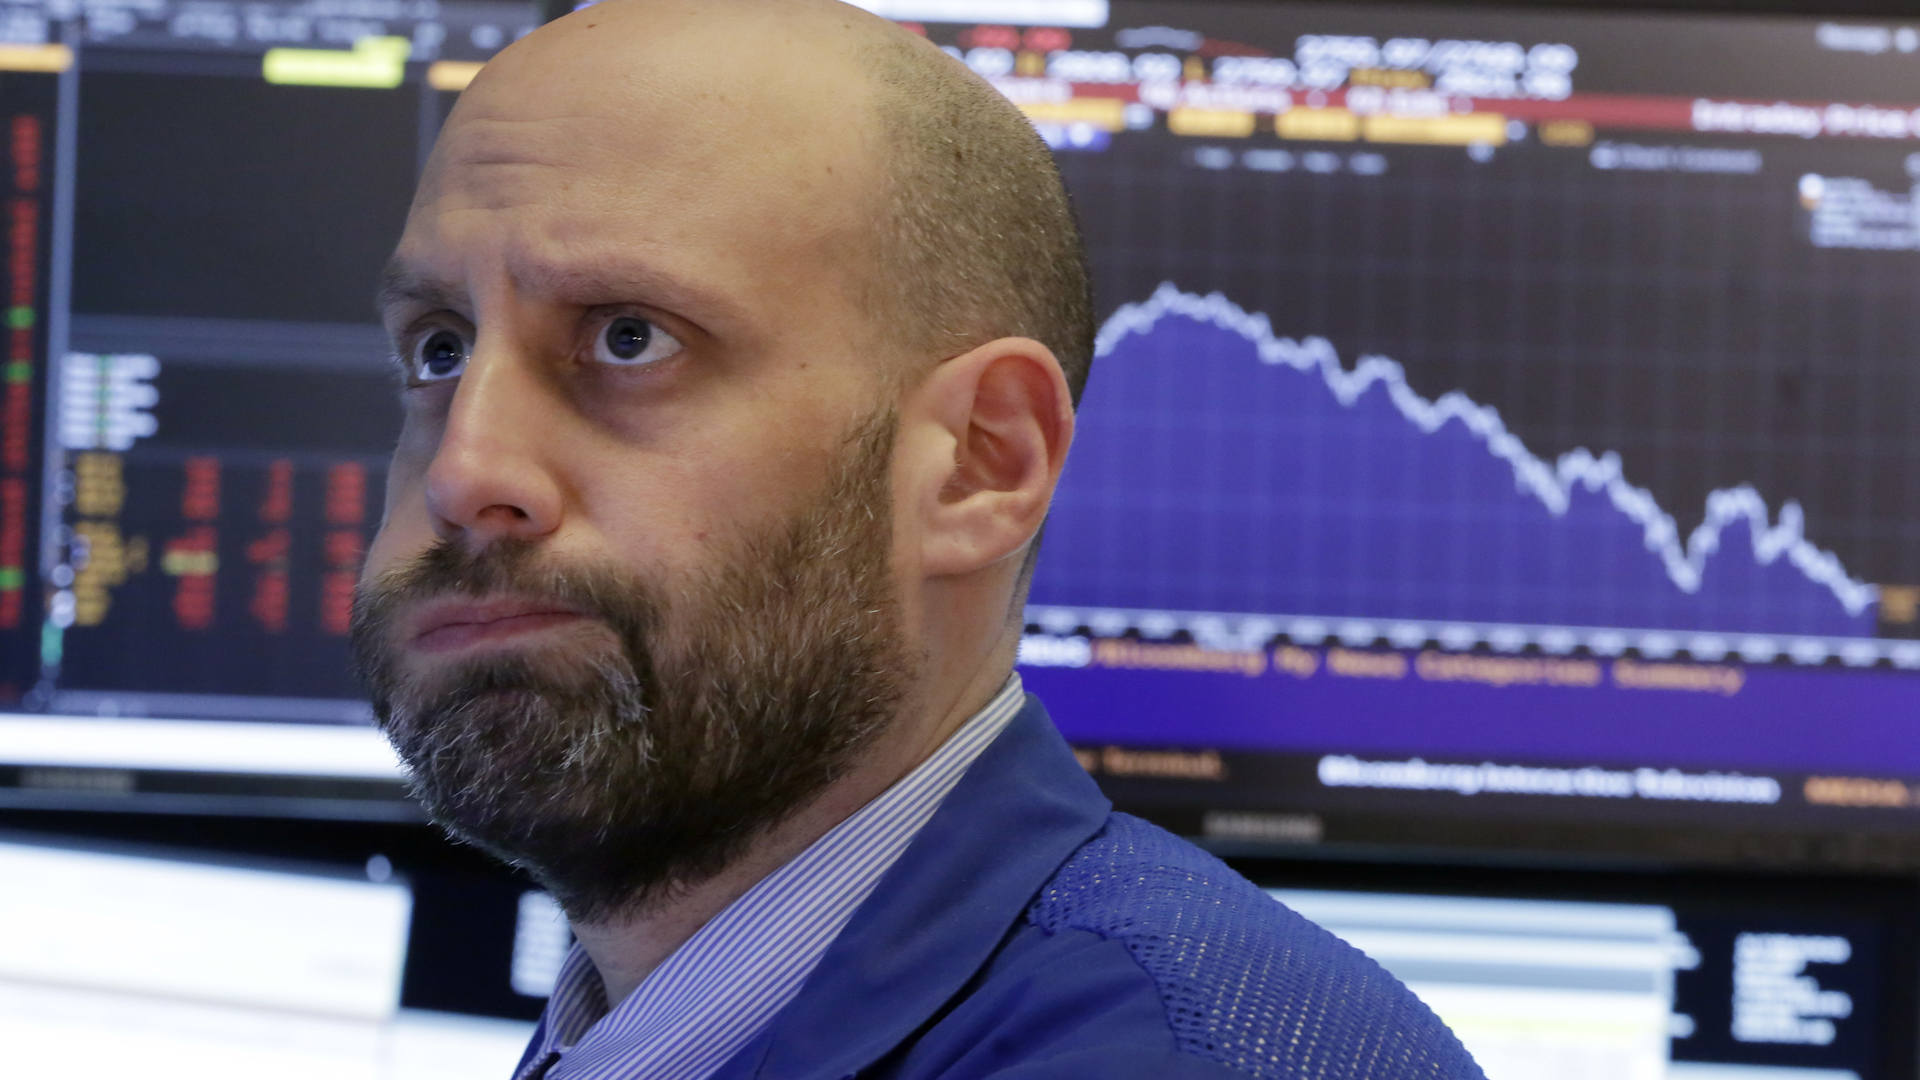 Volatile Dow closes up 567 points after a rocky day of trading following Monday's historic drop